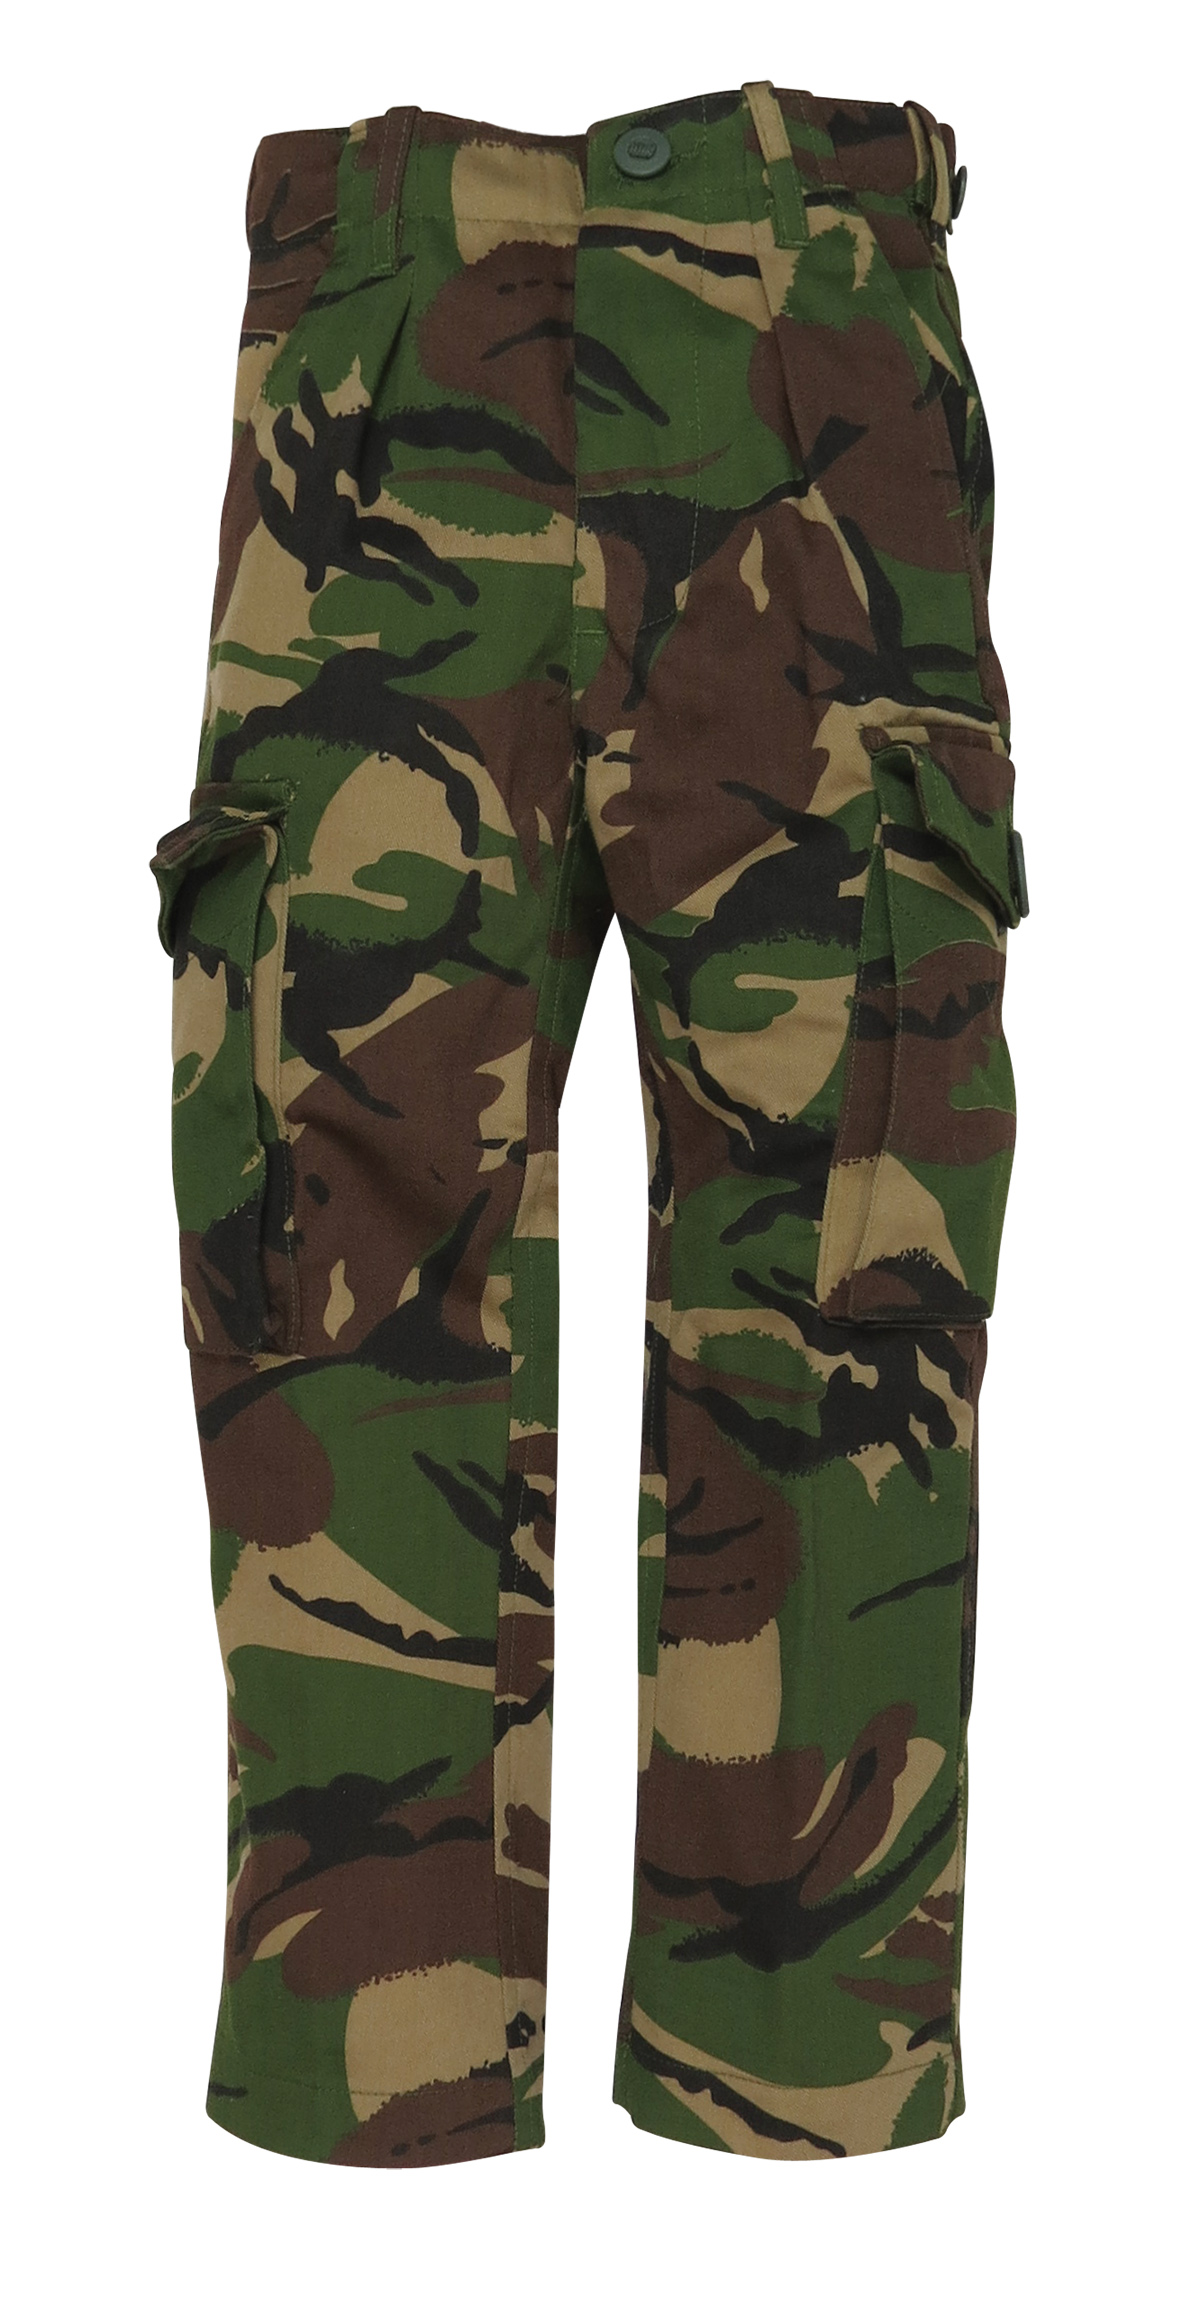 Childrens Army Trousers Kids DPM Combat Camo Trouser, New Woodland Camo Trousers Years Product code: KIDS-TRS-WOODLAND In stock £ Inc. VAT Childrens Army Trousers Kids DPM Combat Camo Trouser, New Woodland Camo Trousers Years Product code: KIDS-TR-WOODLAND In stock £ Inc. VAT.